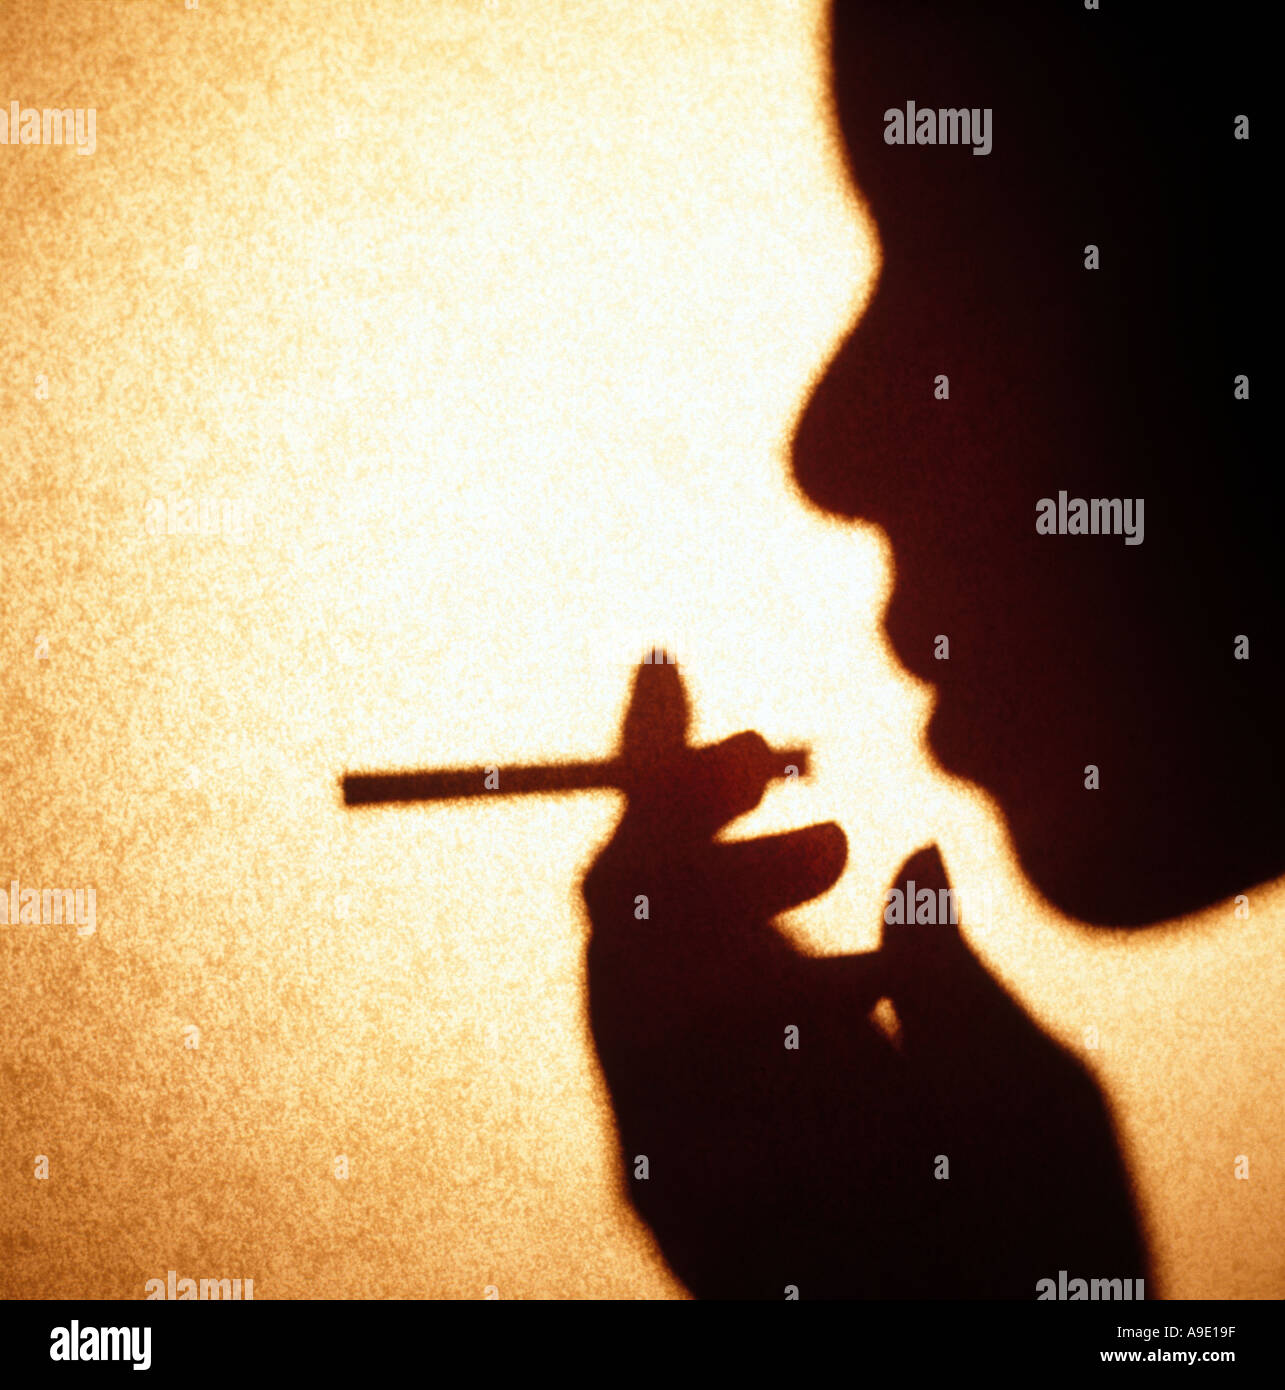 Woman African American smoking holding cigarette - Stock Image